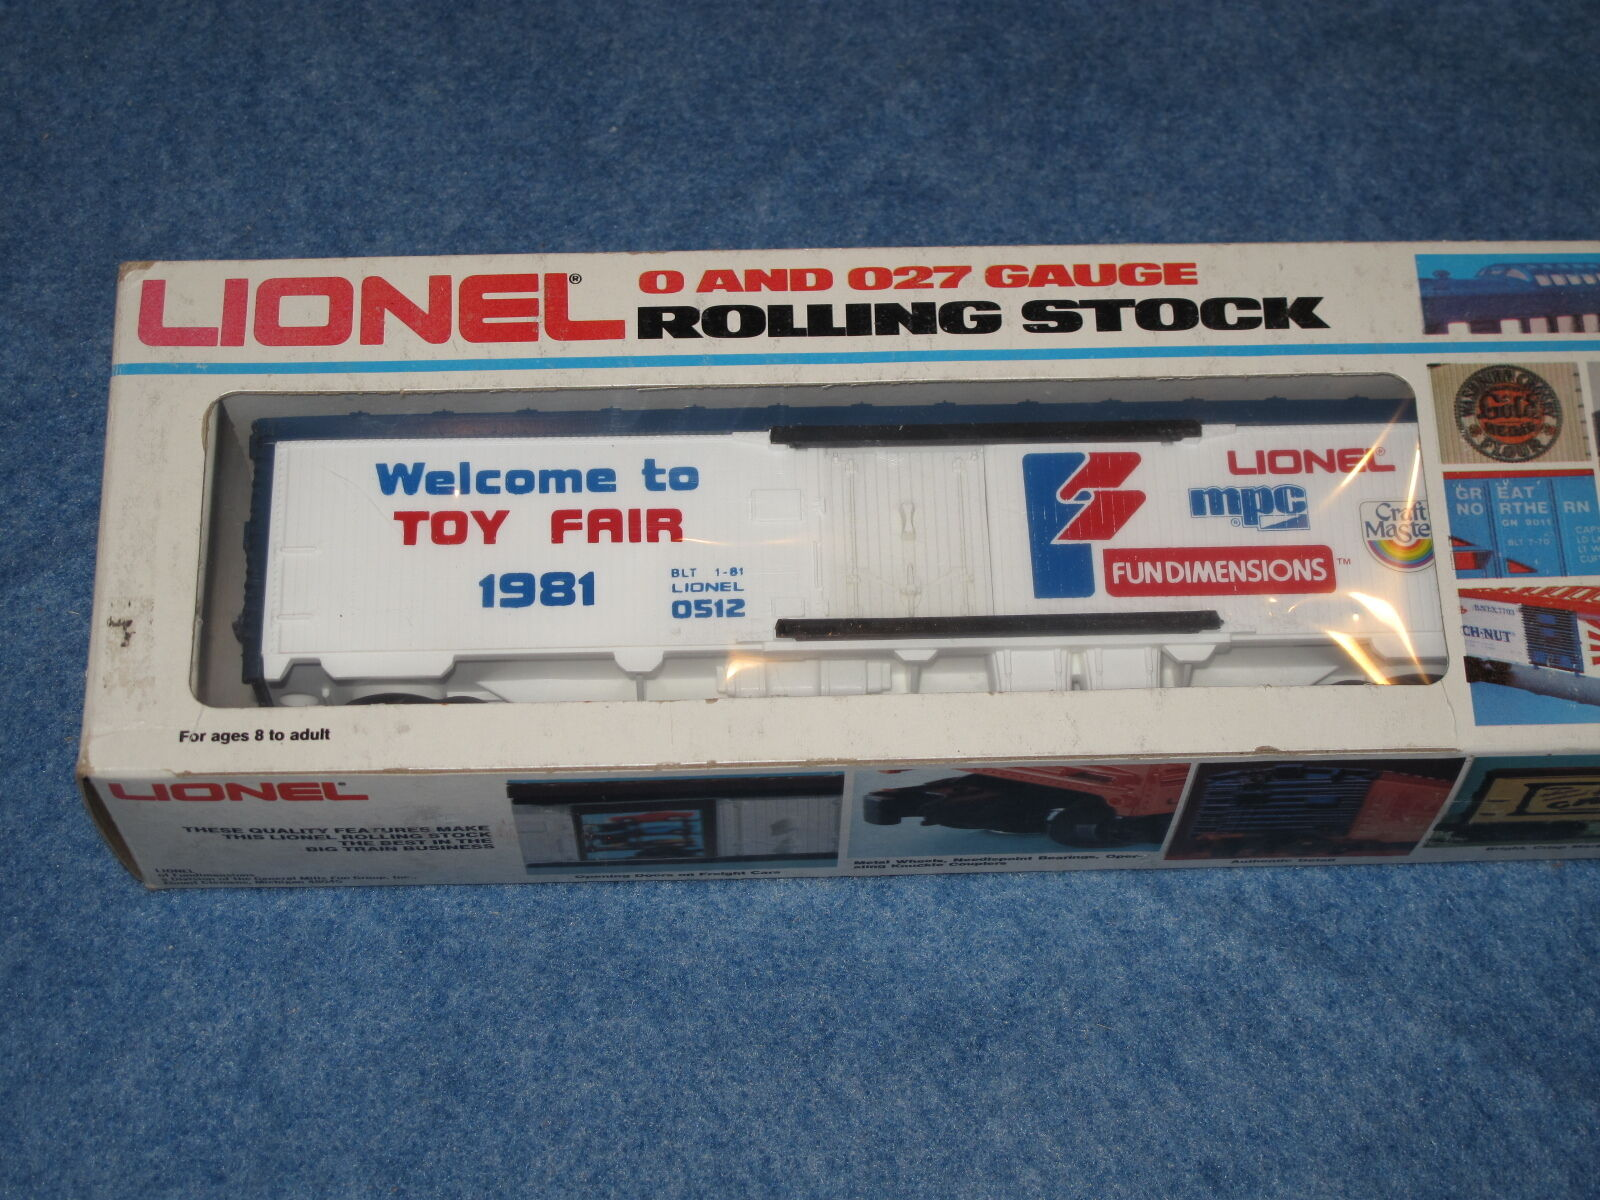 1981 Lionel 6-0512 Welcome To Toy Fair 1981 Box Car L0551